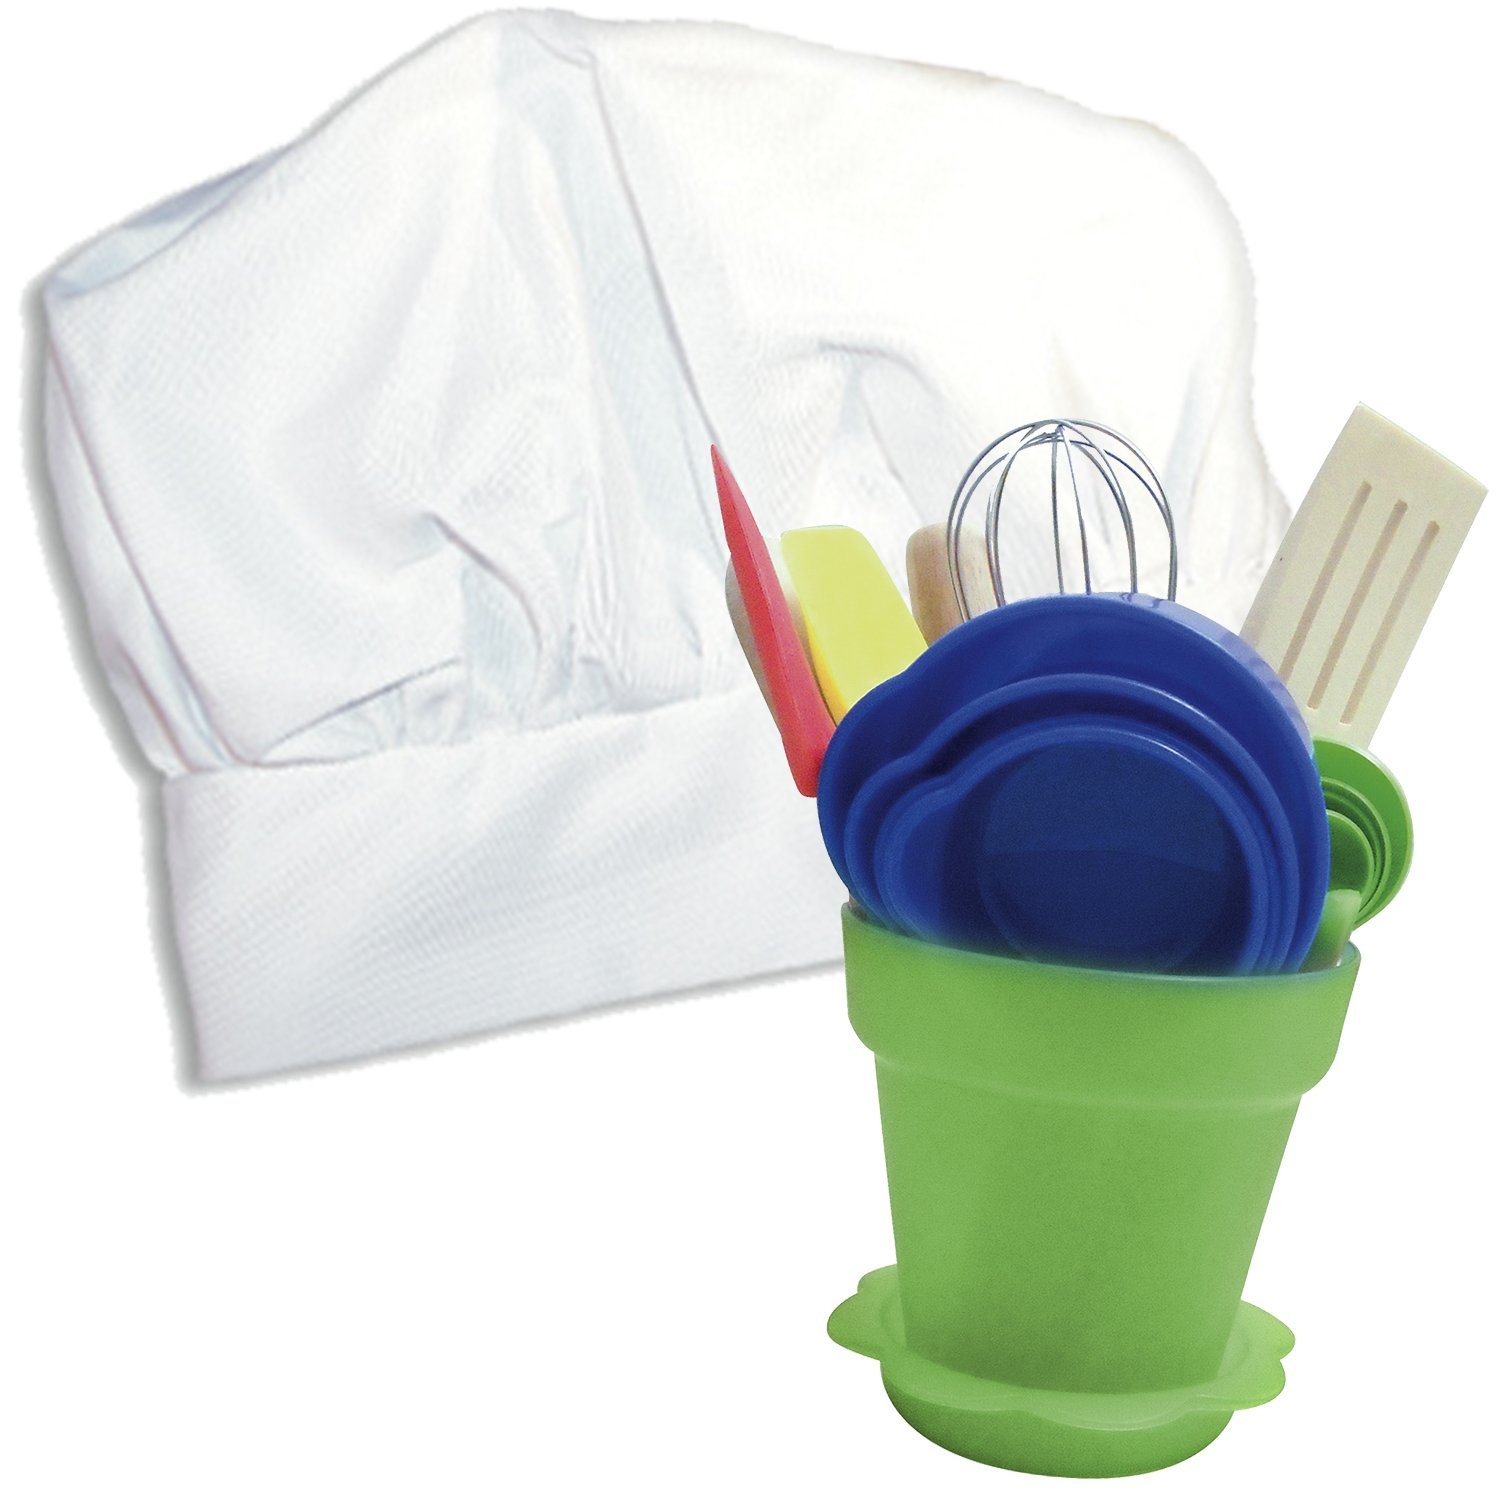 Sassafras ''The Little Cook Kid's Kitchen Tool Set with Bonus Chef's Hat -Dishwasher Safe Children's Cooking Kit Includes Herb Pot -Includes 16 Piece Children's Kitchen Tool Set and Kid's Chef's Hat